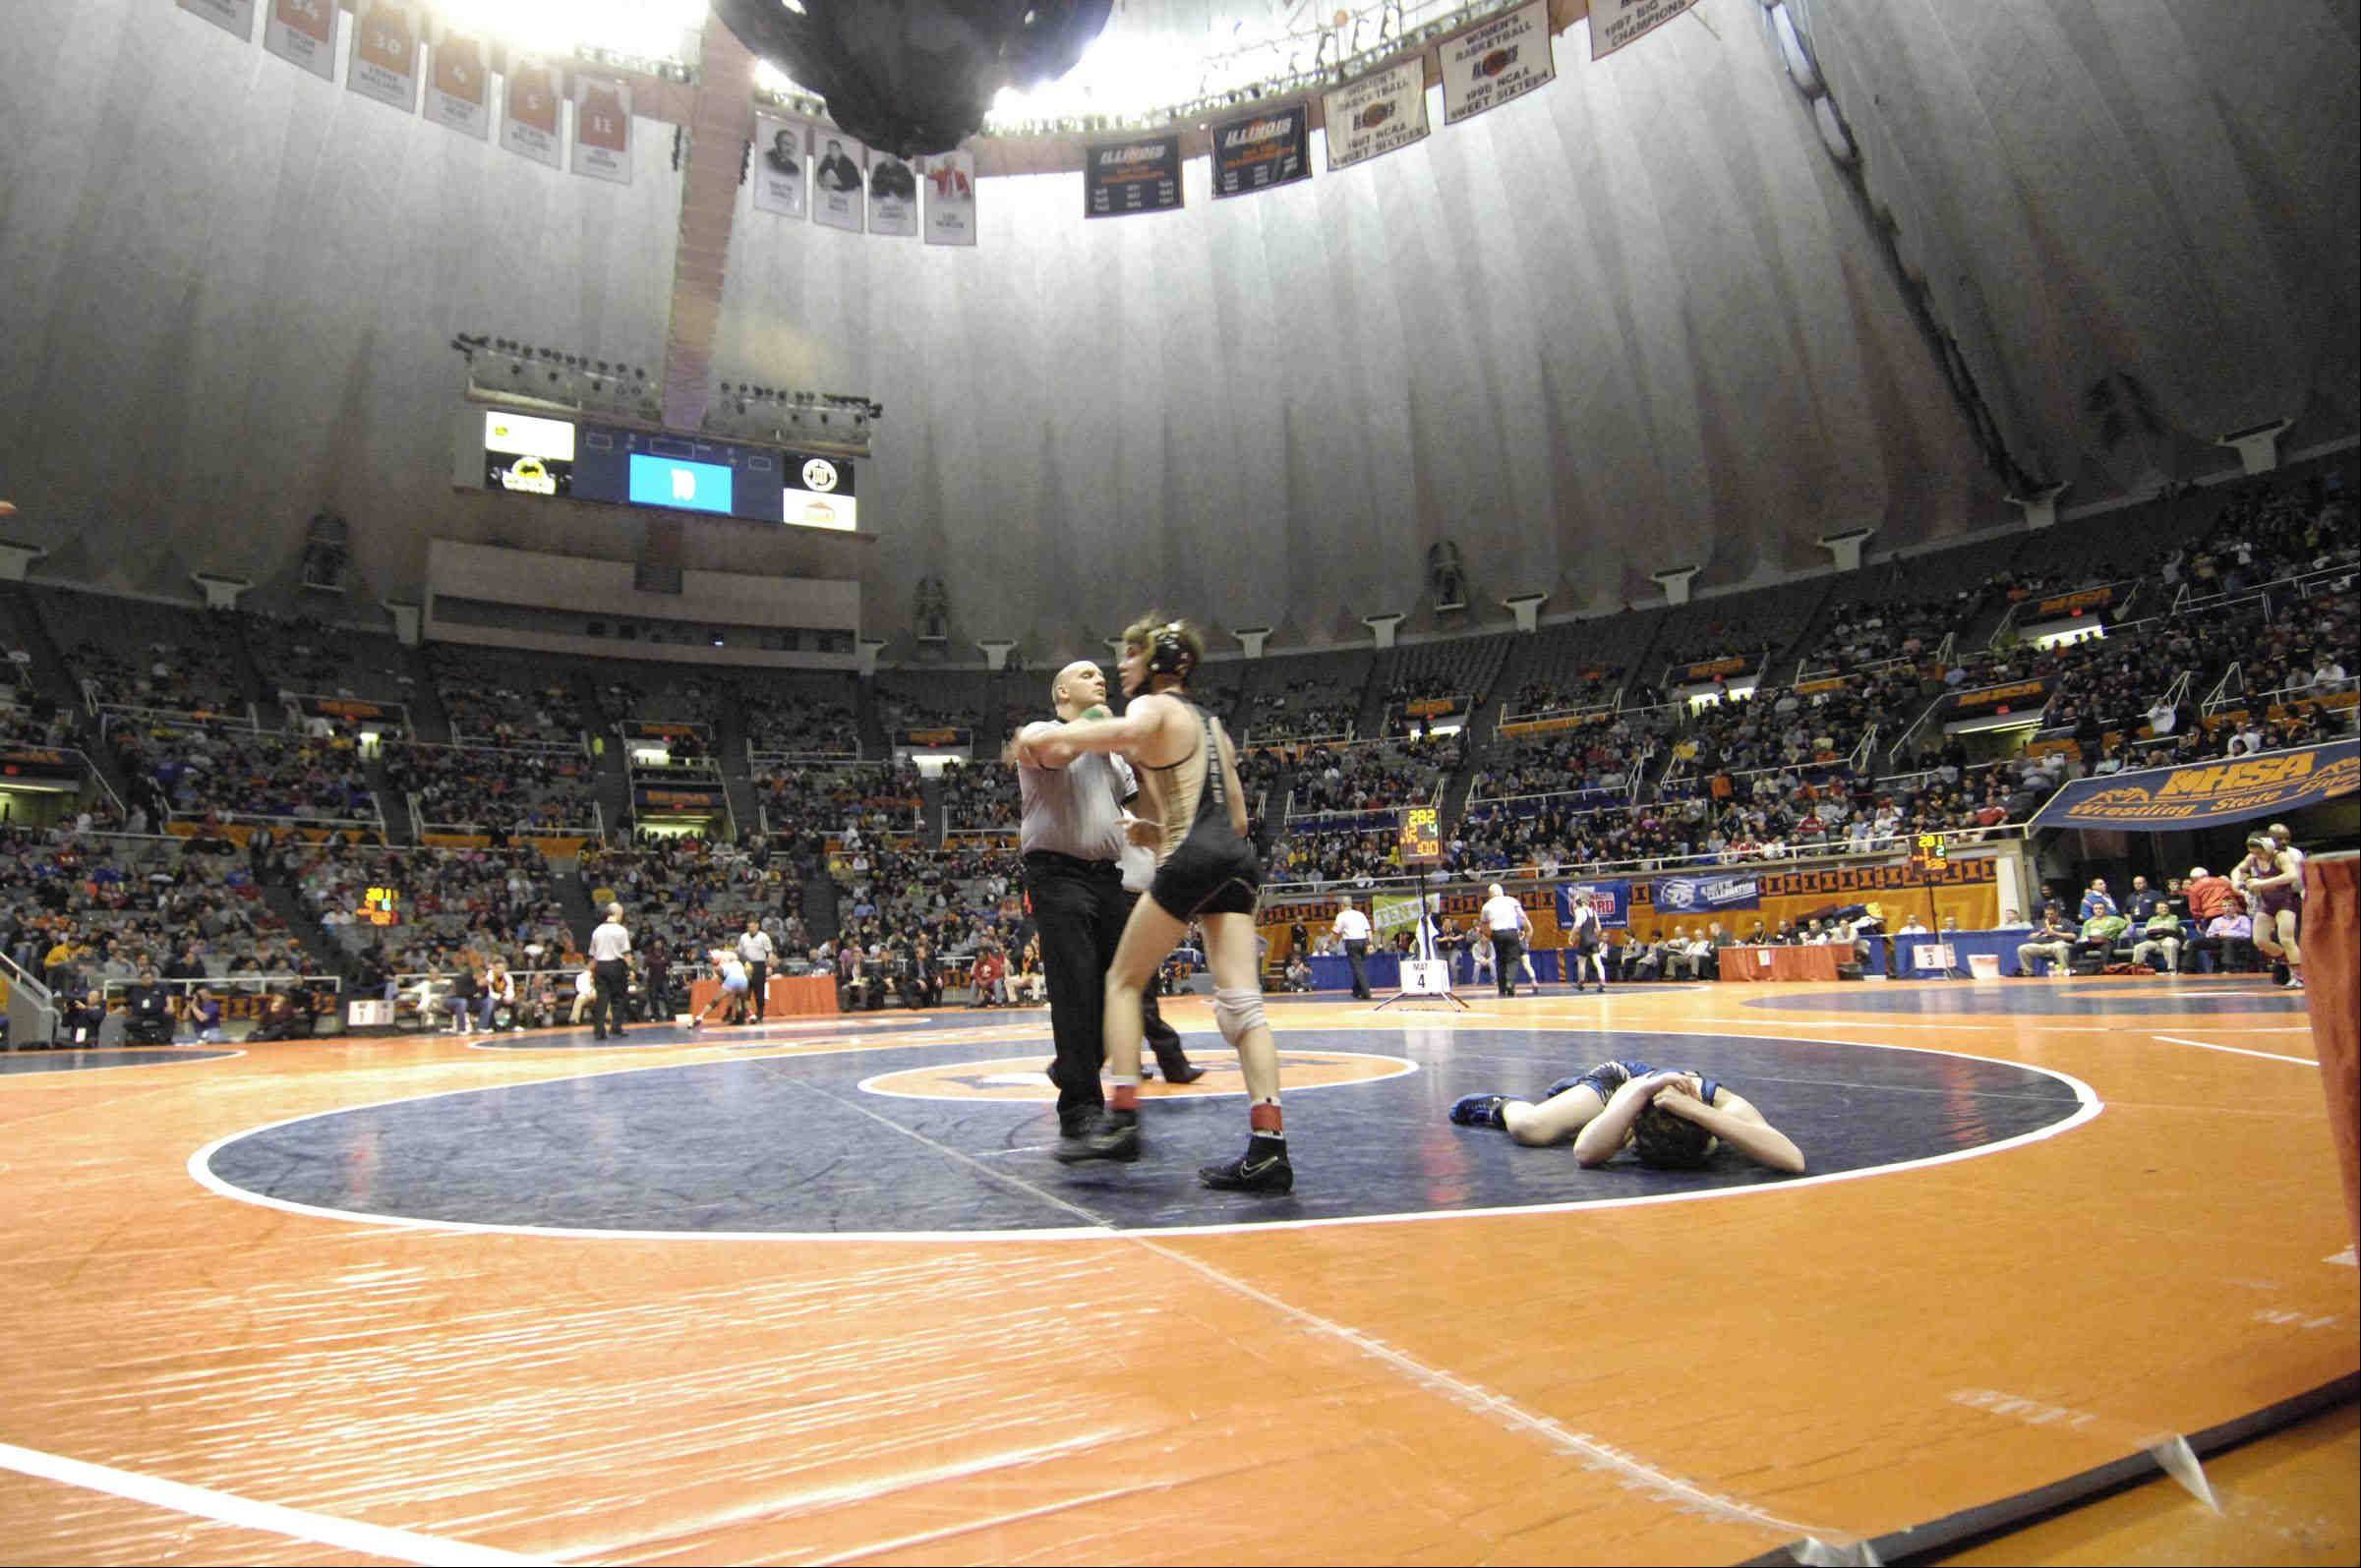 Images: IHSA state wrestling semifinals in Champaign